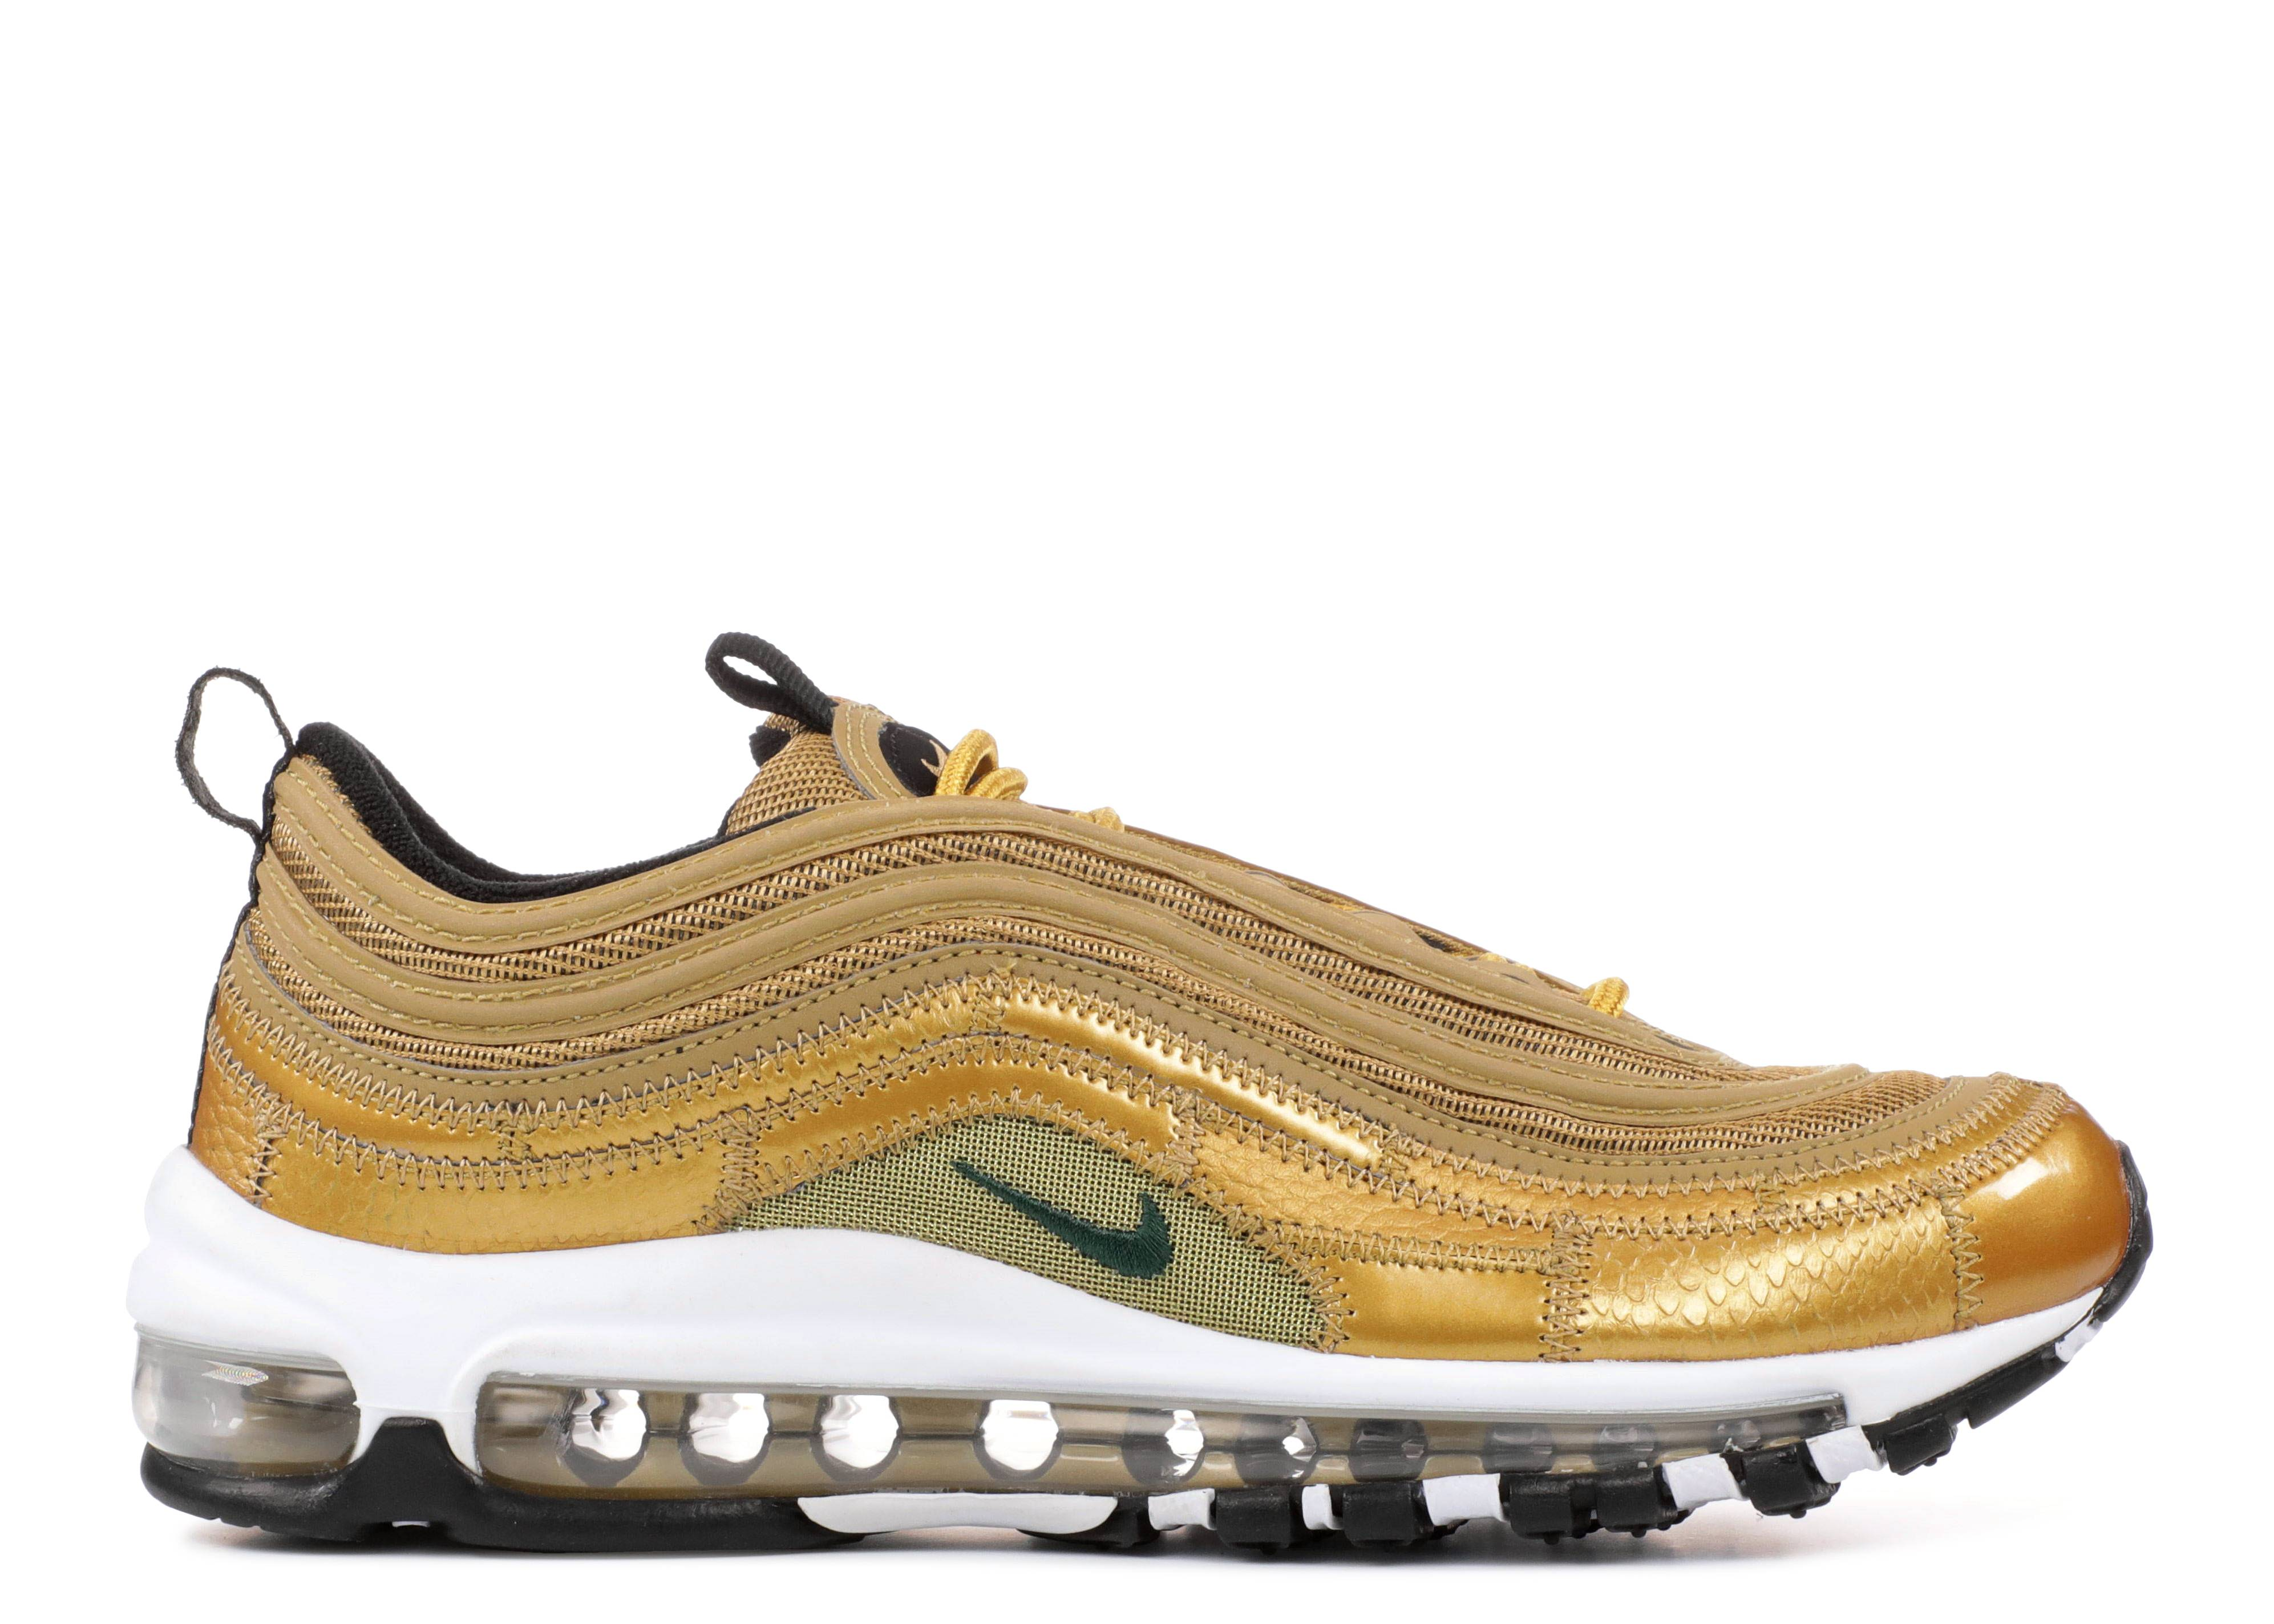 6ec16c41079 Nike Air Max 97 CR7